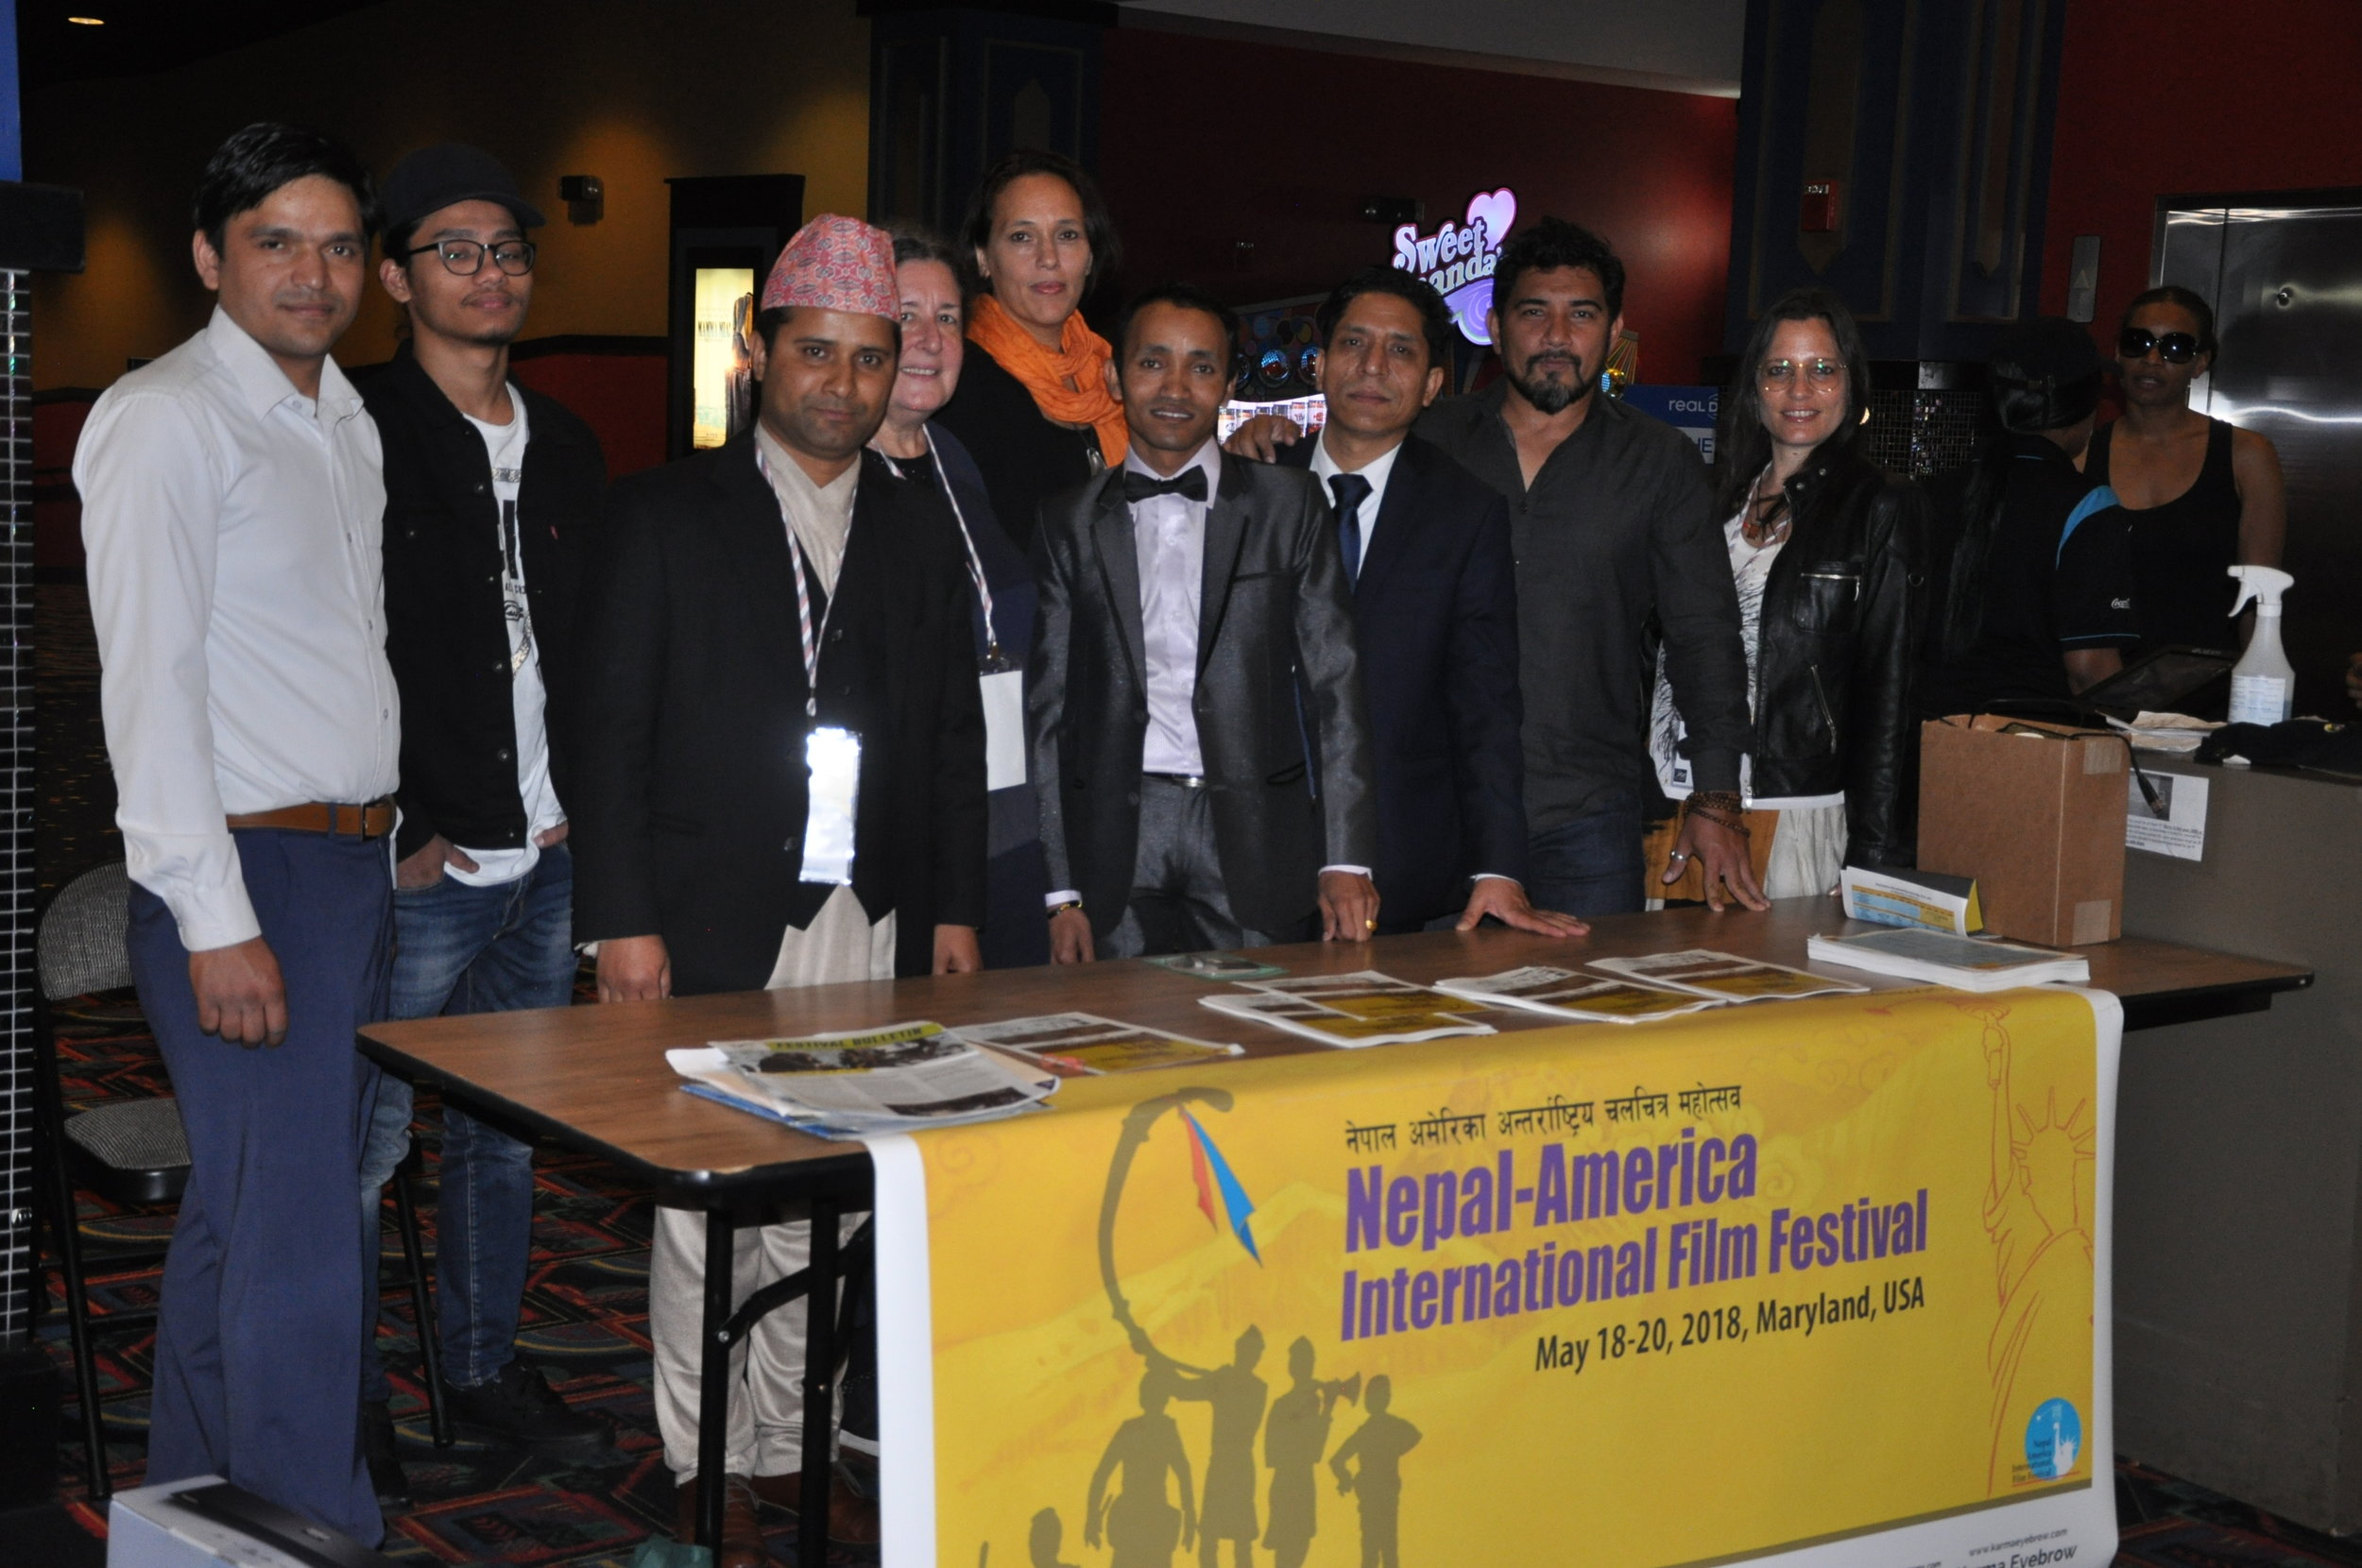 Center screen: Members of the Nepal America Film Society and filmmakers at the Regal Hyattsville Royal Theater where the festival leaders screened nearly 50 films .